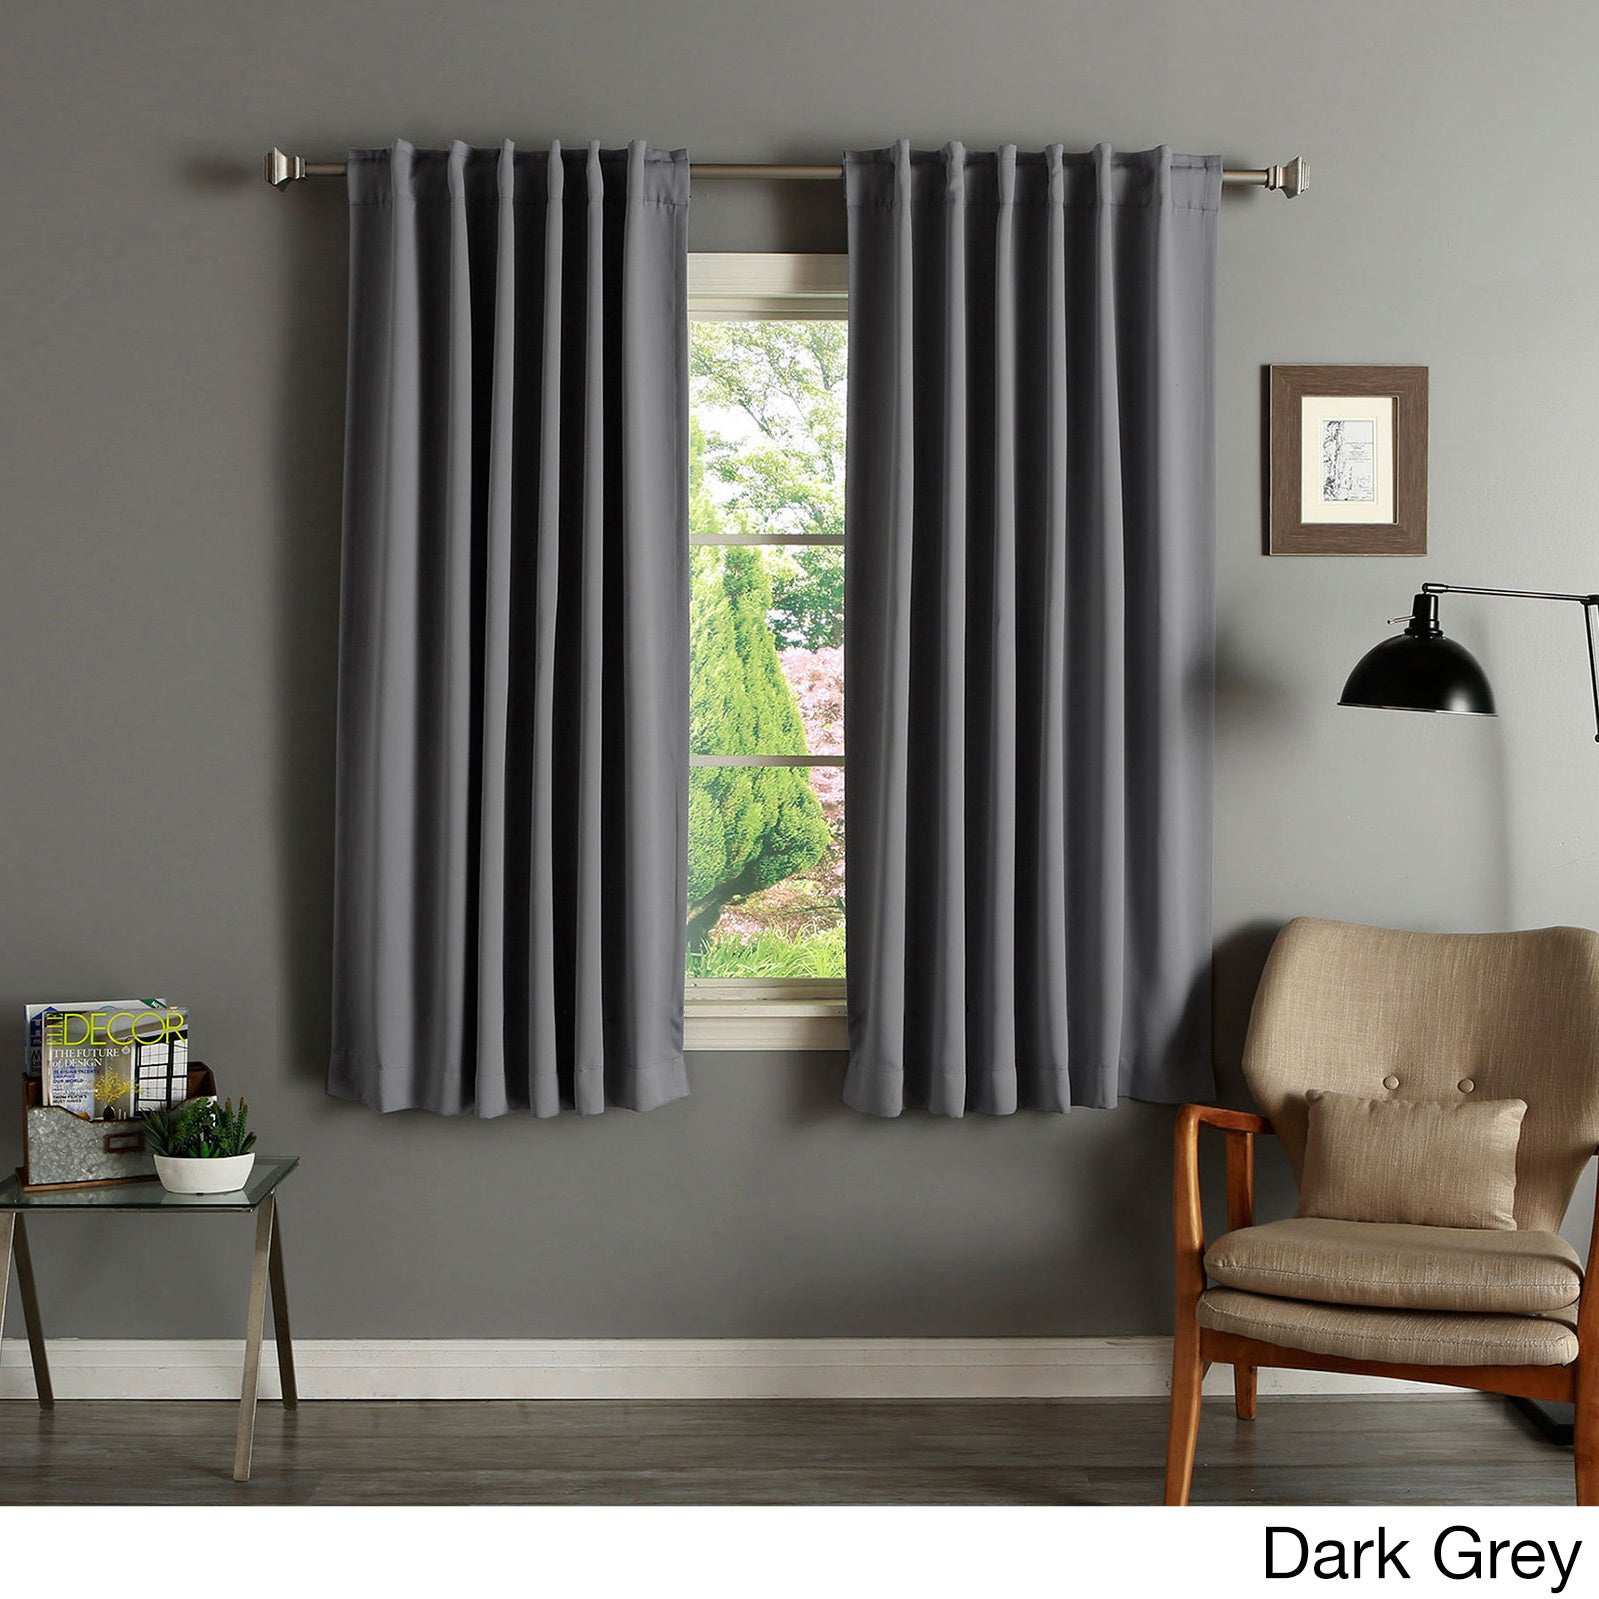 Aurora Home Solid Insulated Thermal 63 Inch Blackout Curtain Panel Pair    Free Shipping On Orders Over $45   Overstock.com   11109716